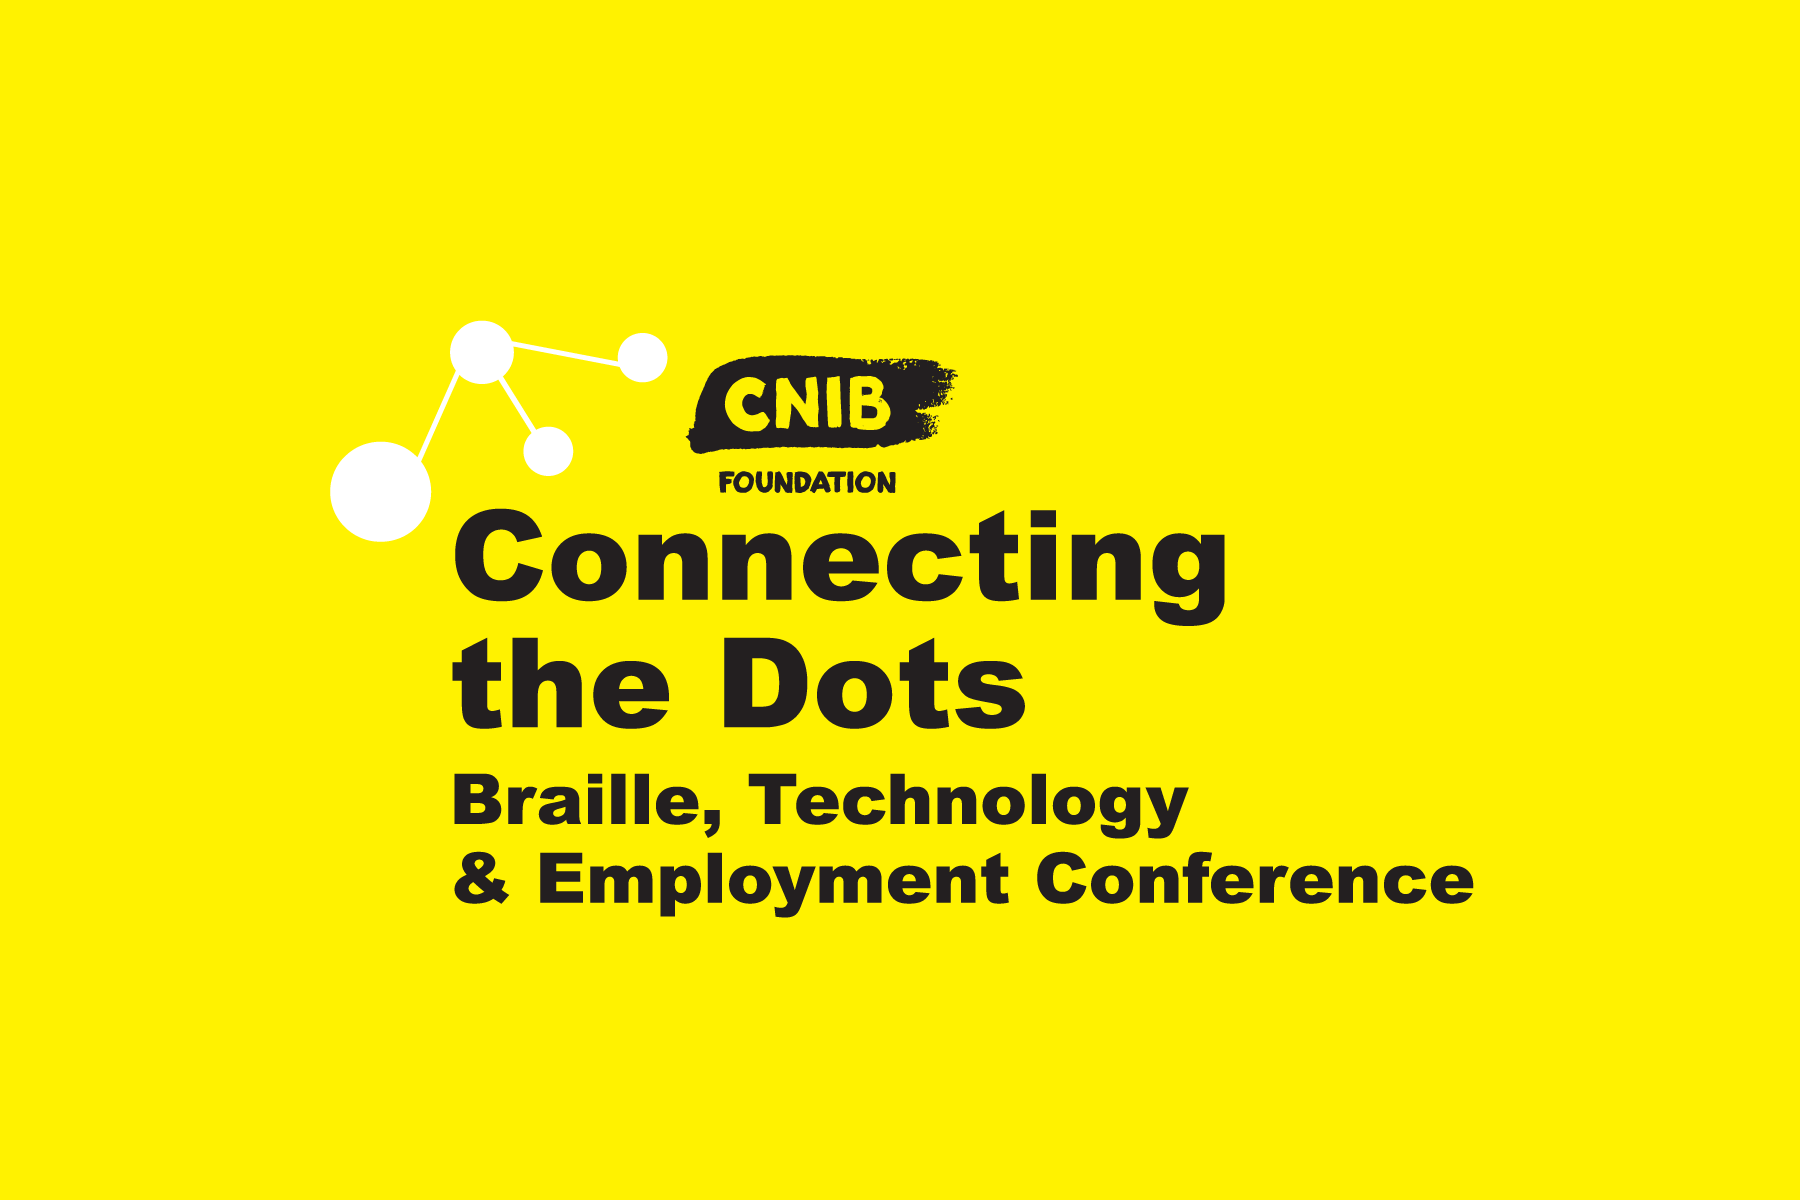 Connecting the Dots logo. Text on image reads: CNIB Foundation Connecting the Dots. Braille, Technology and Employment Conference.